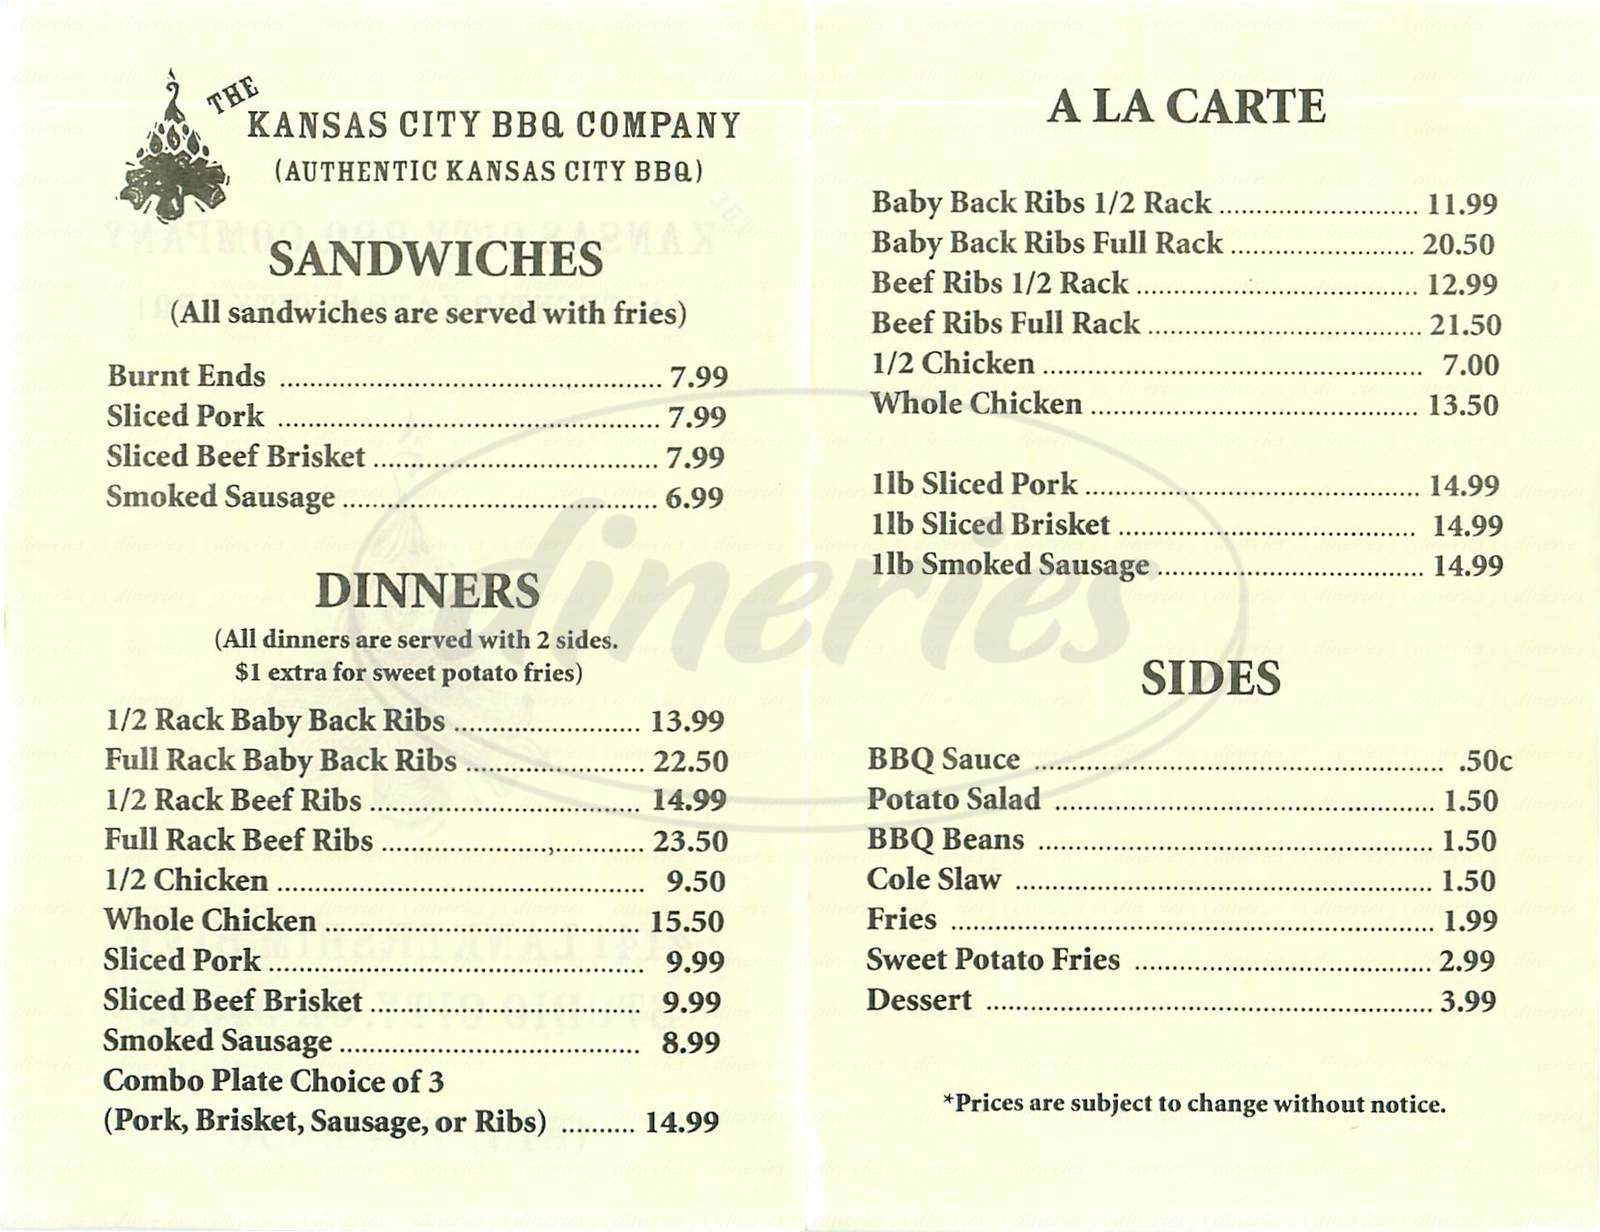 menu for Kansas City BBQ Company